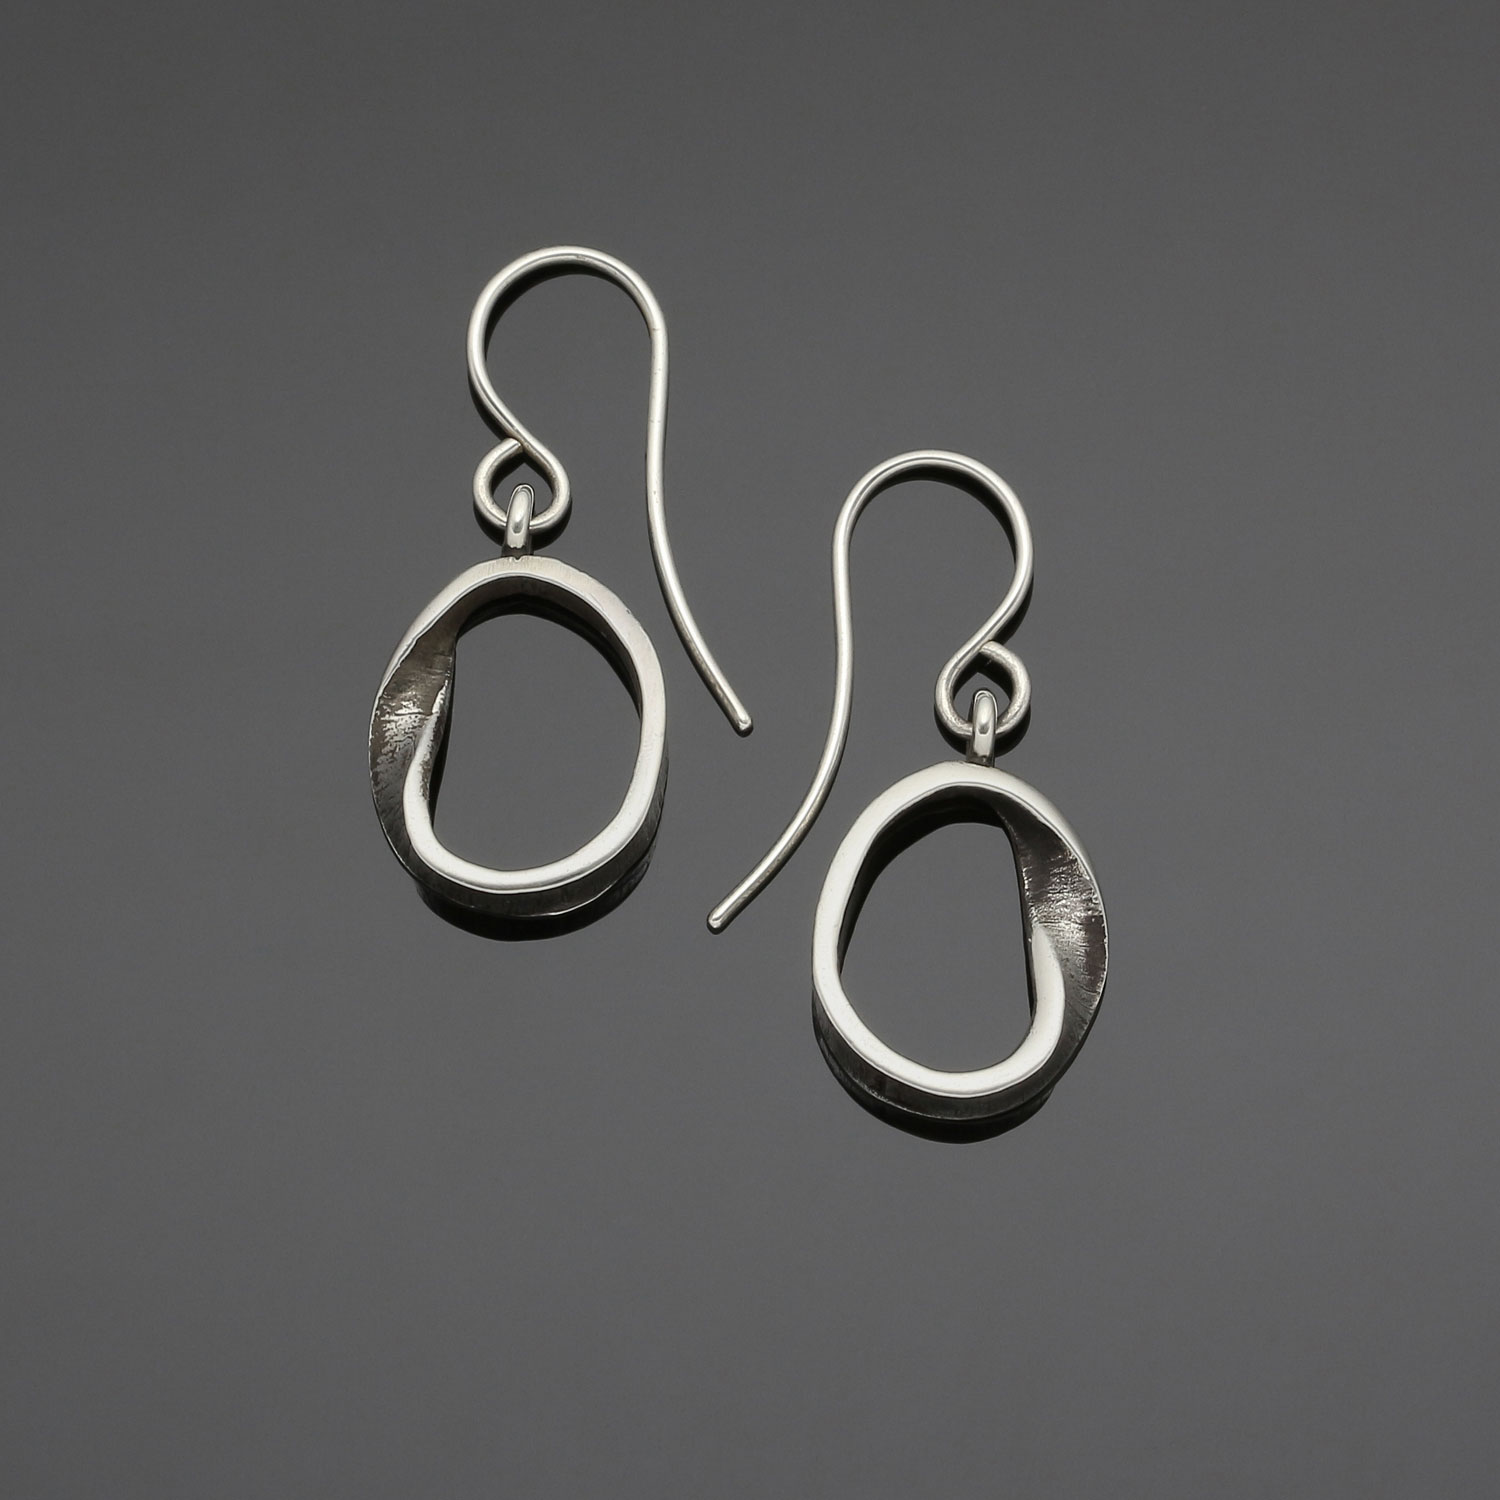 #126 Mobius small hoop earring